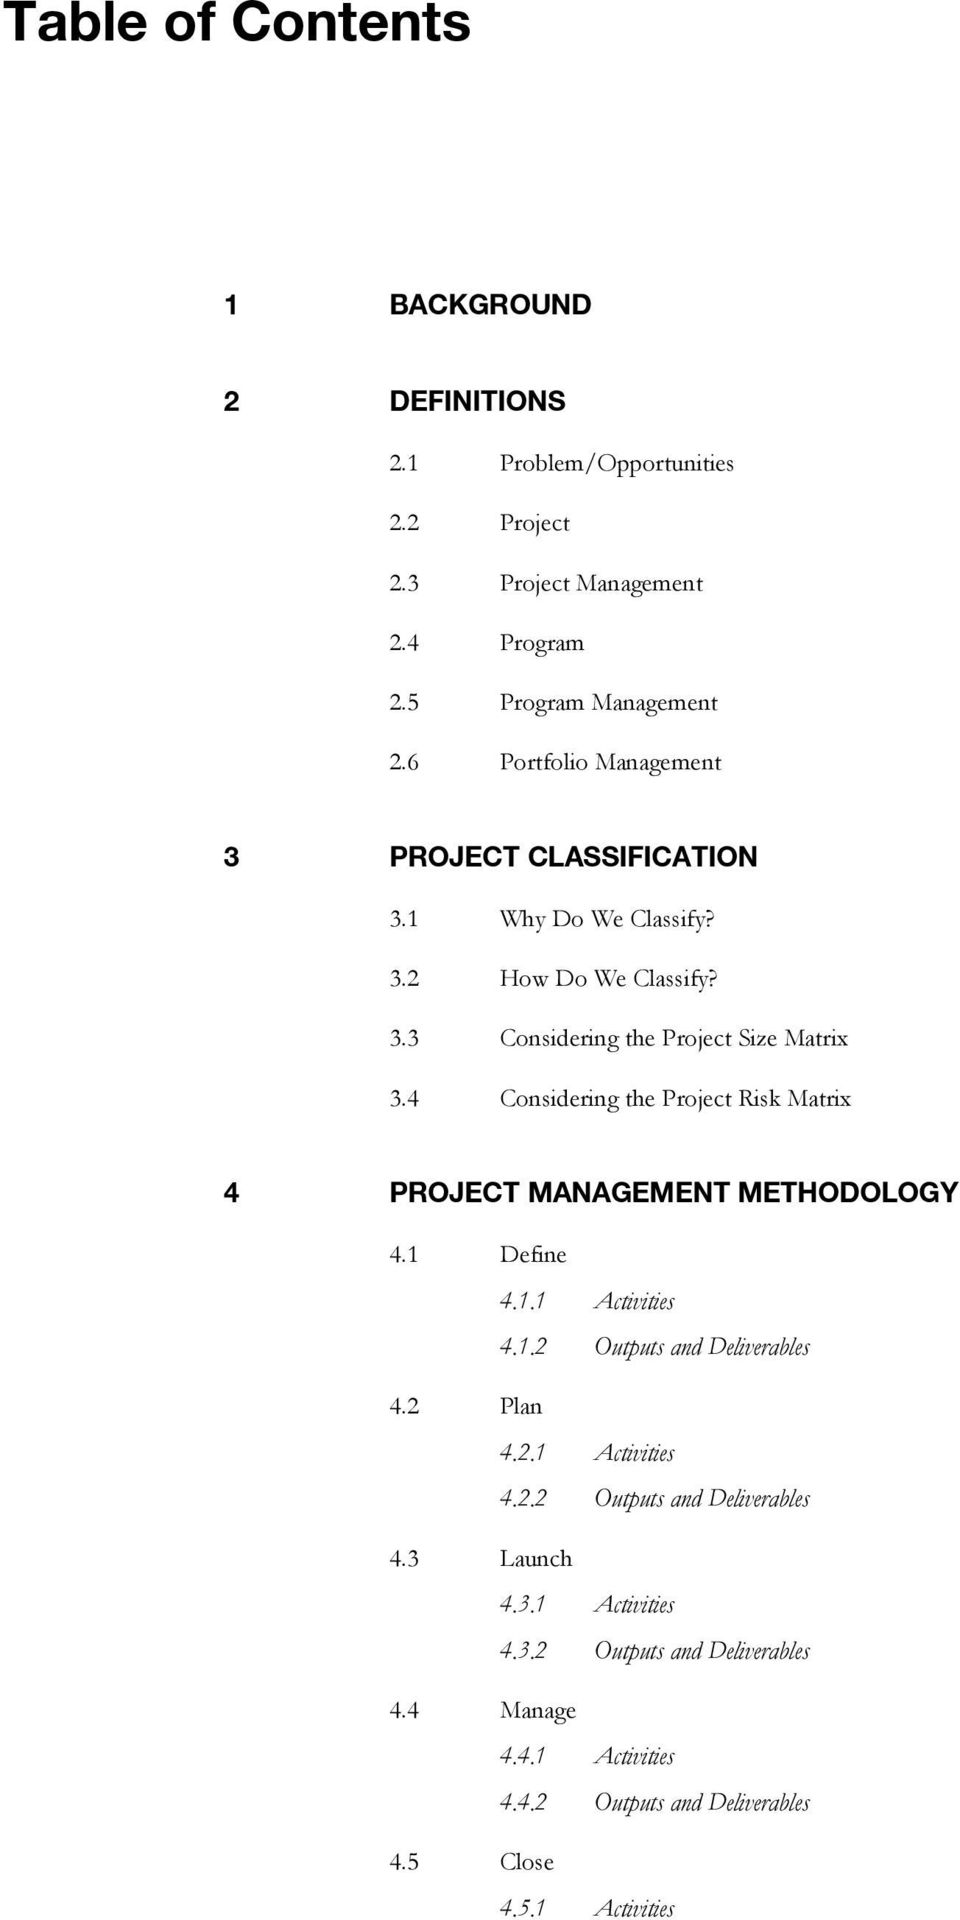 4 Considering the Project Risk Matrix 4 PROJECT MANAGEMENT METHODOLOGY 4.1 Define 4.1.1 Activities 4.1.2 Outputs and Deliverables 4.2 Plan 4.2.1 Activities 4.2.2 Outputs and Deliverables 4.3 Launch 4.